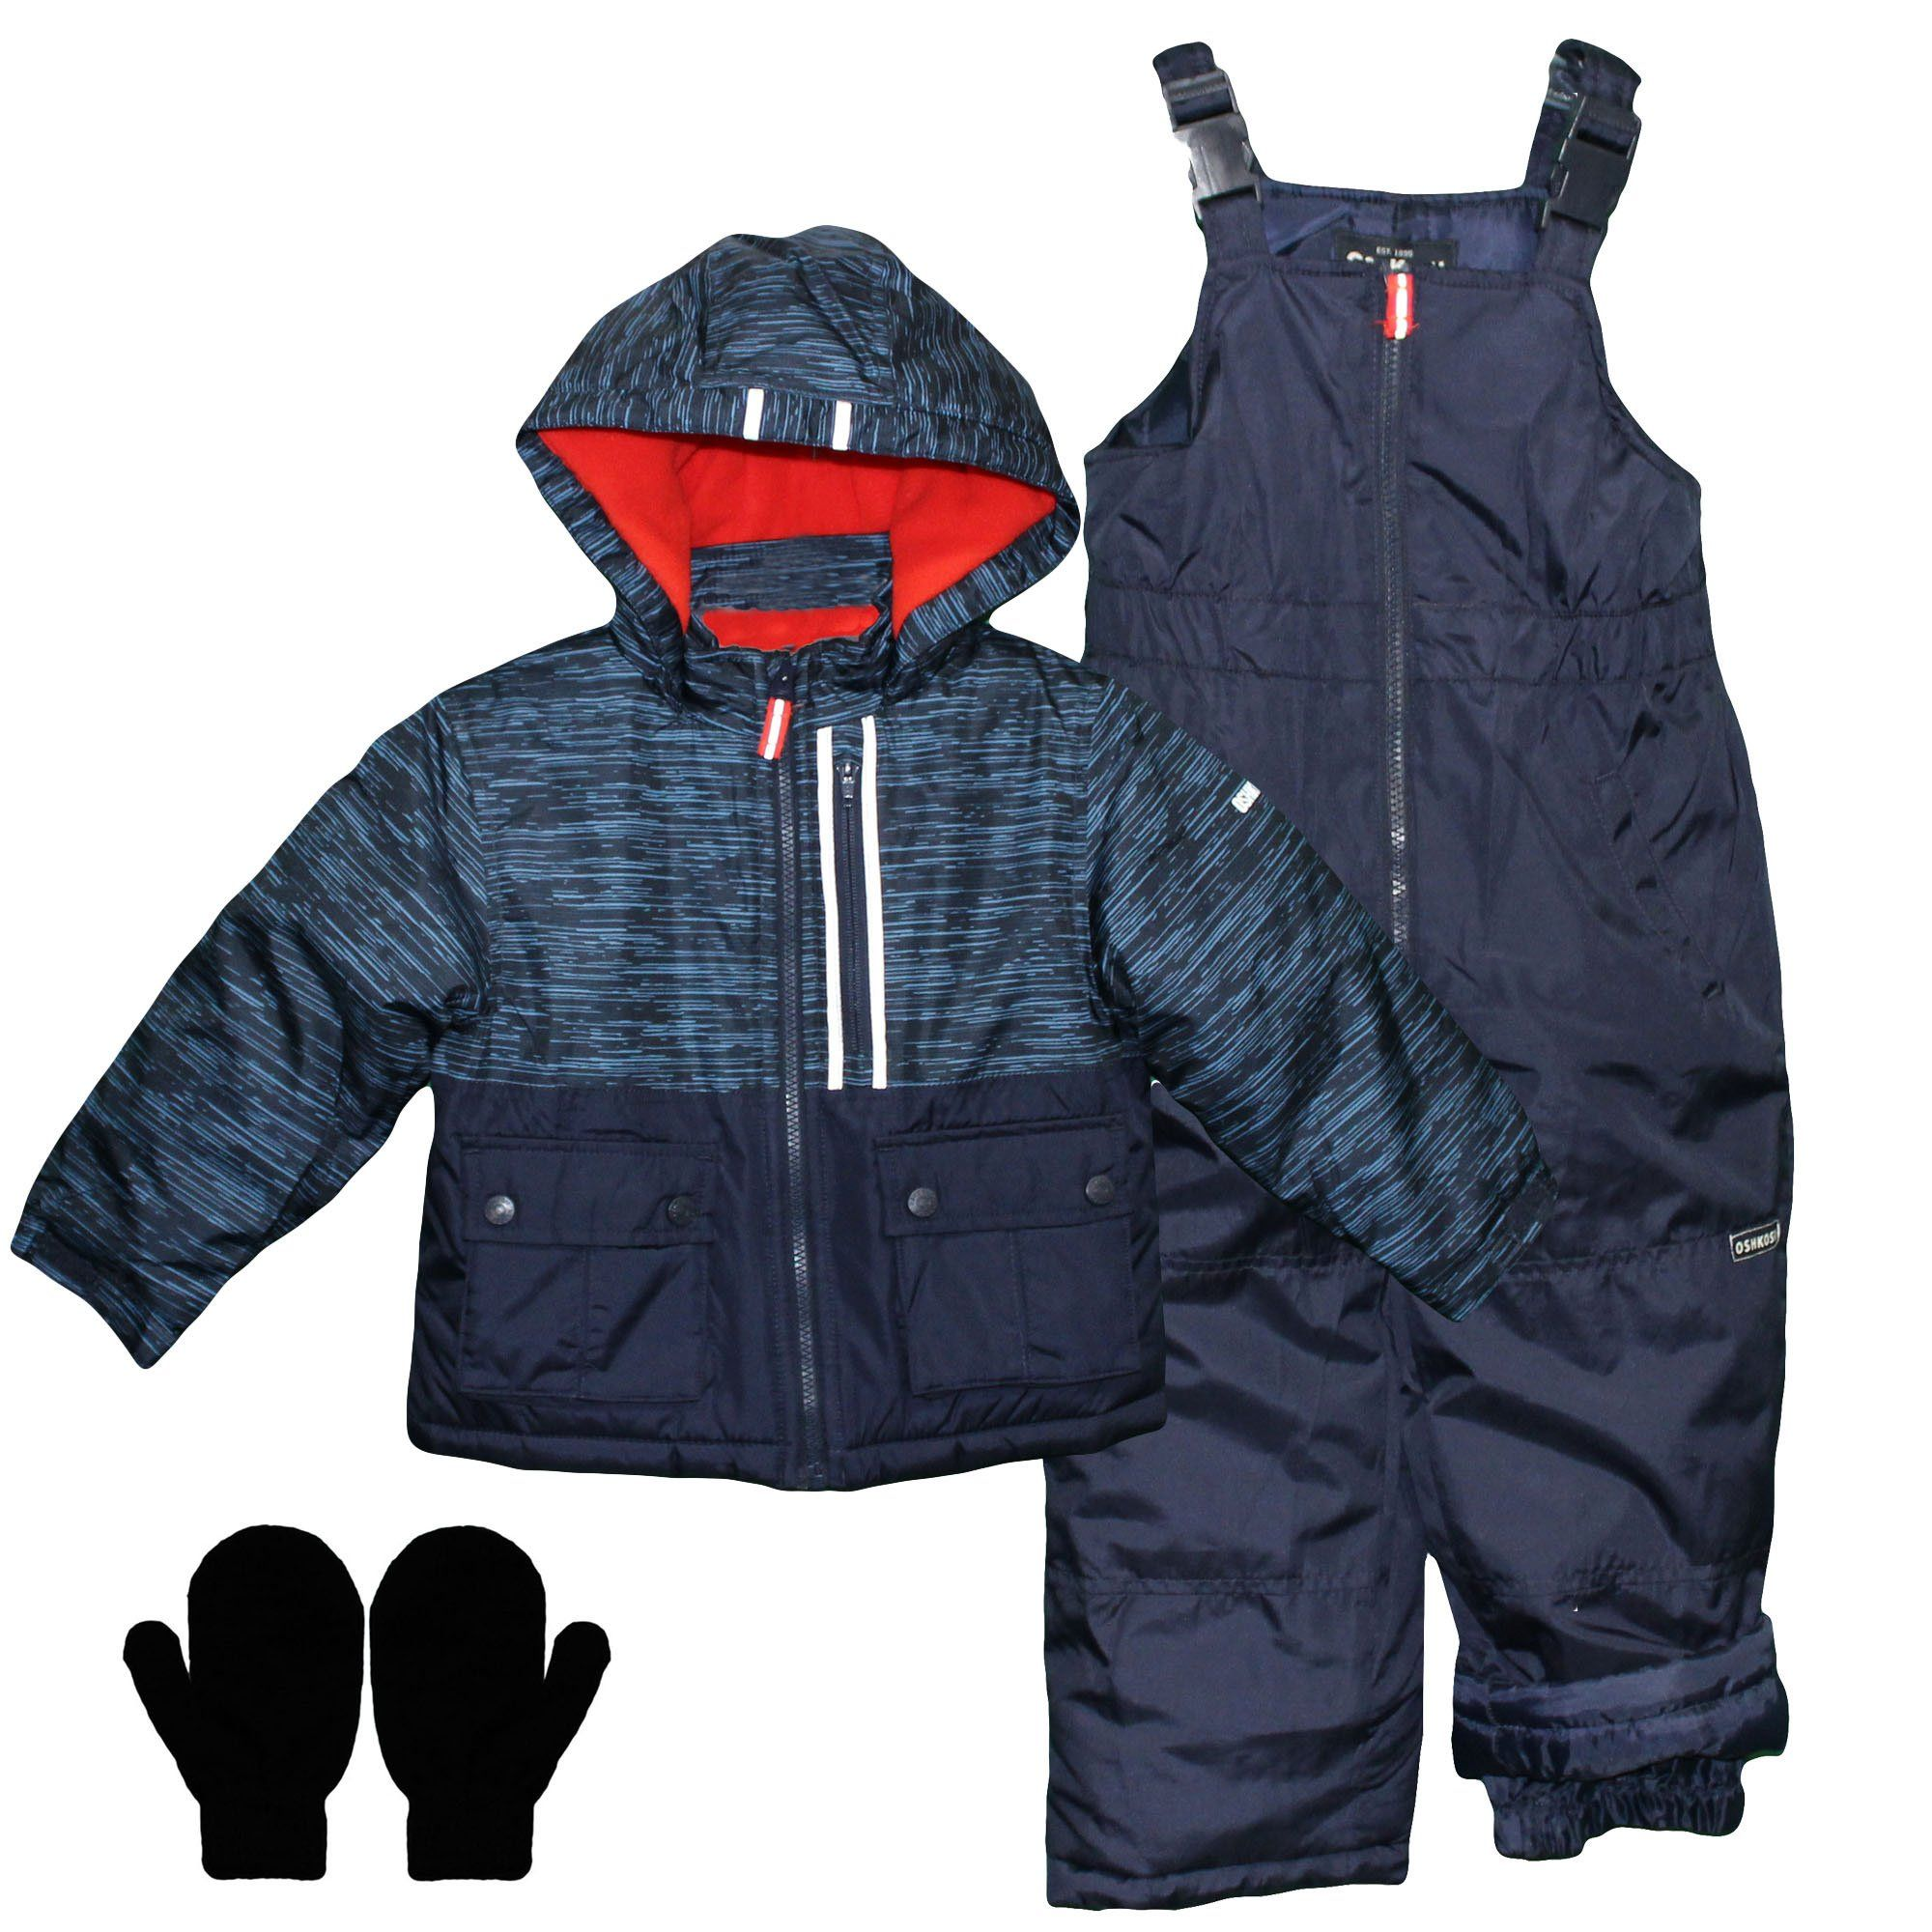 5918d8952 OshKosh Toddler Heavy Snow Suit Winter Jacket Snow Pants and Mittens ...